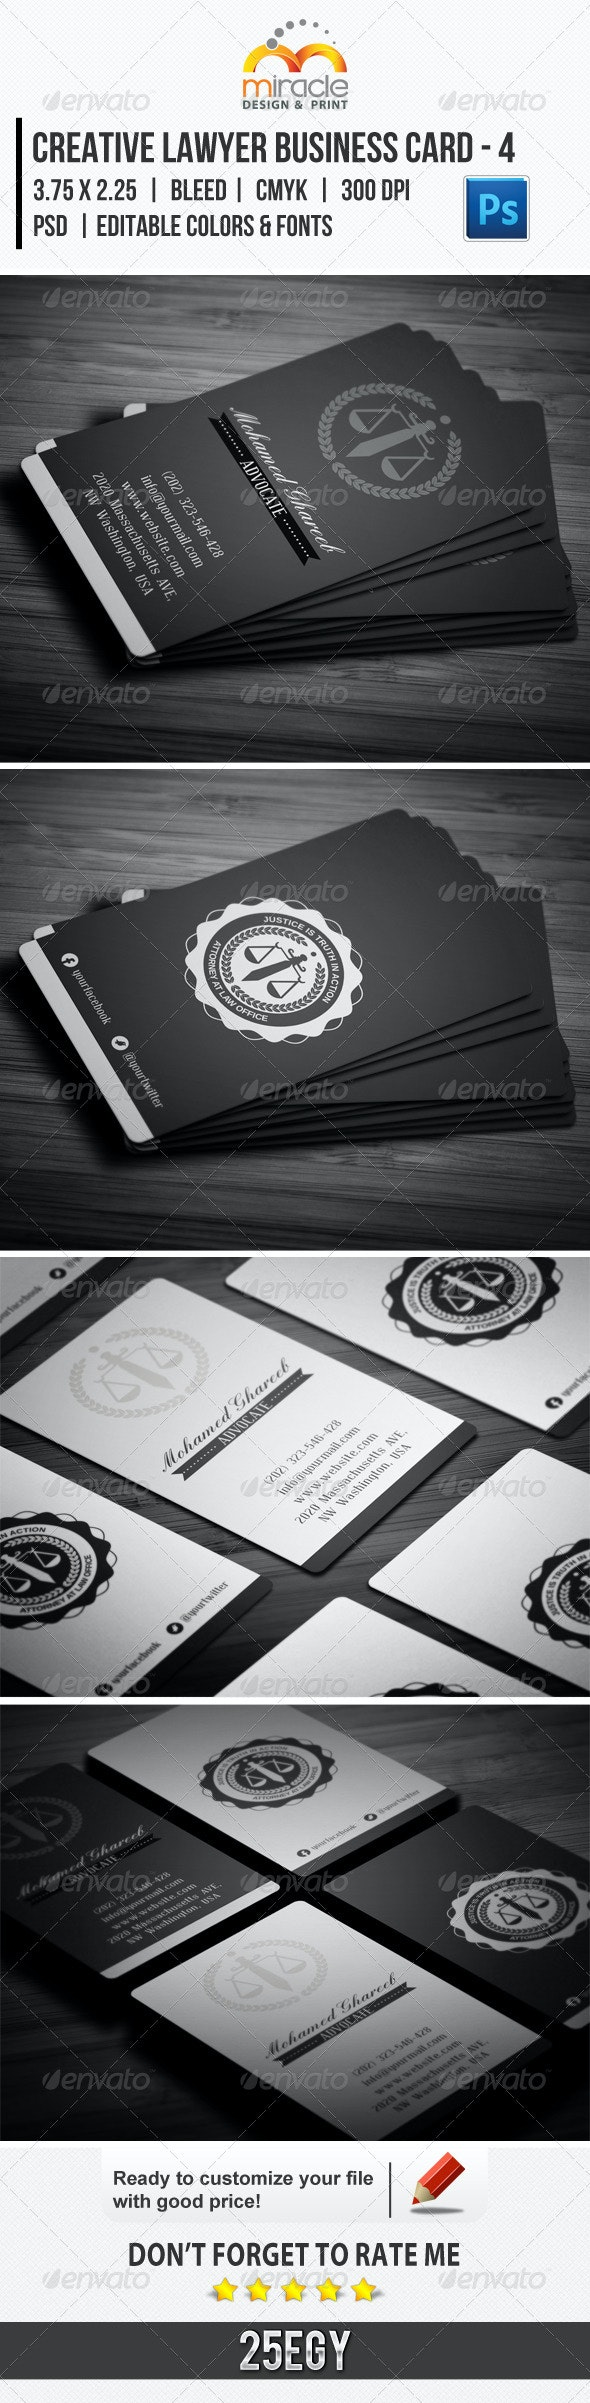 Creative Lawyer Business Card #4 - Business Cards Print Templates